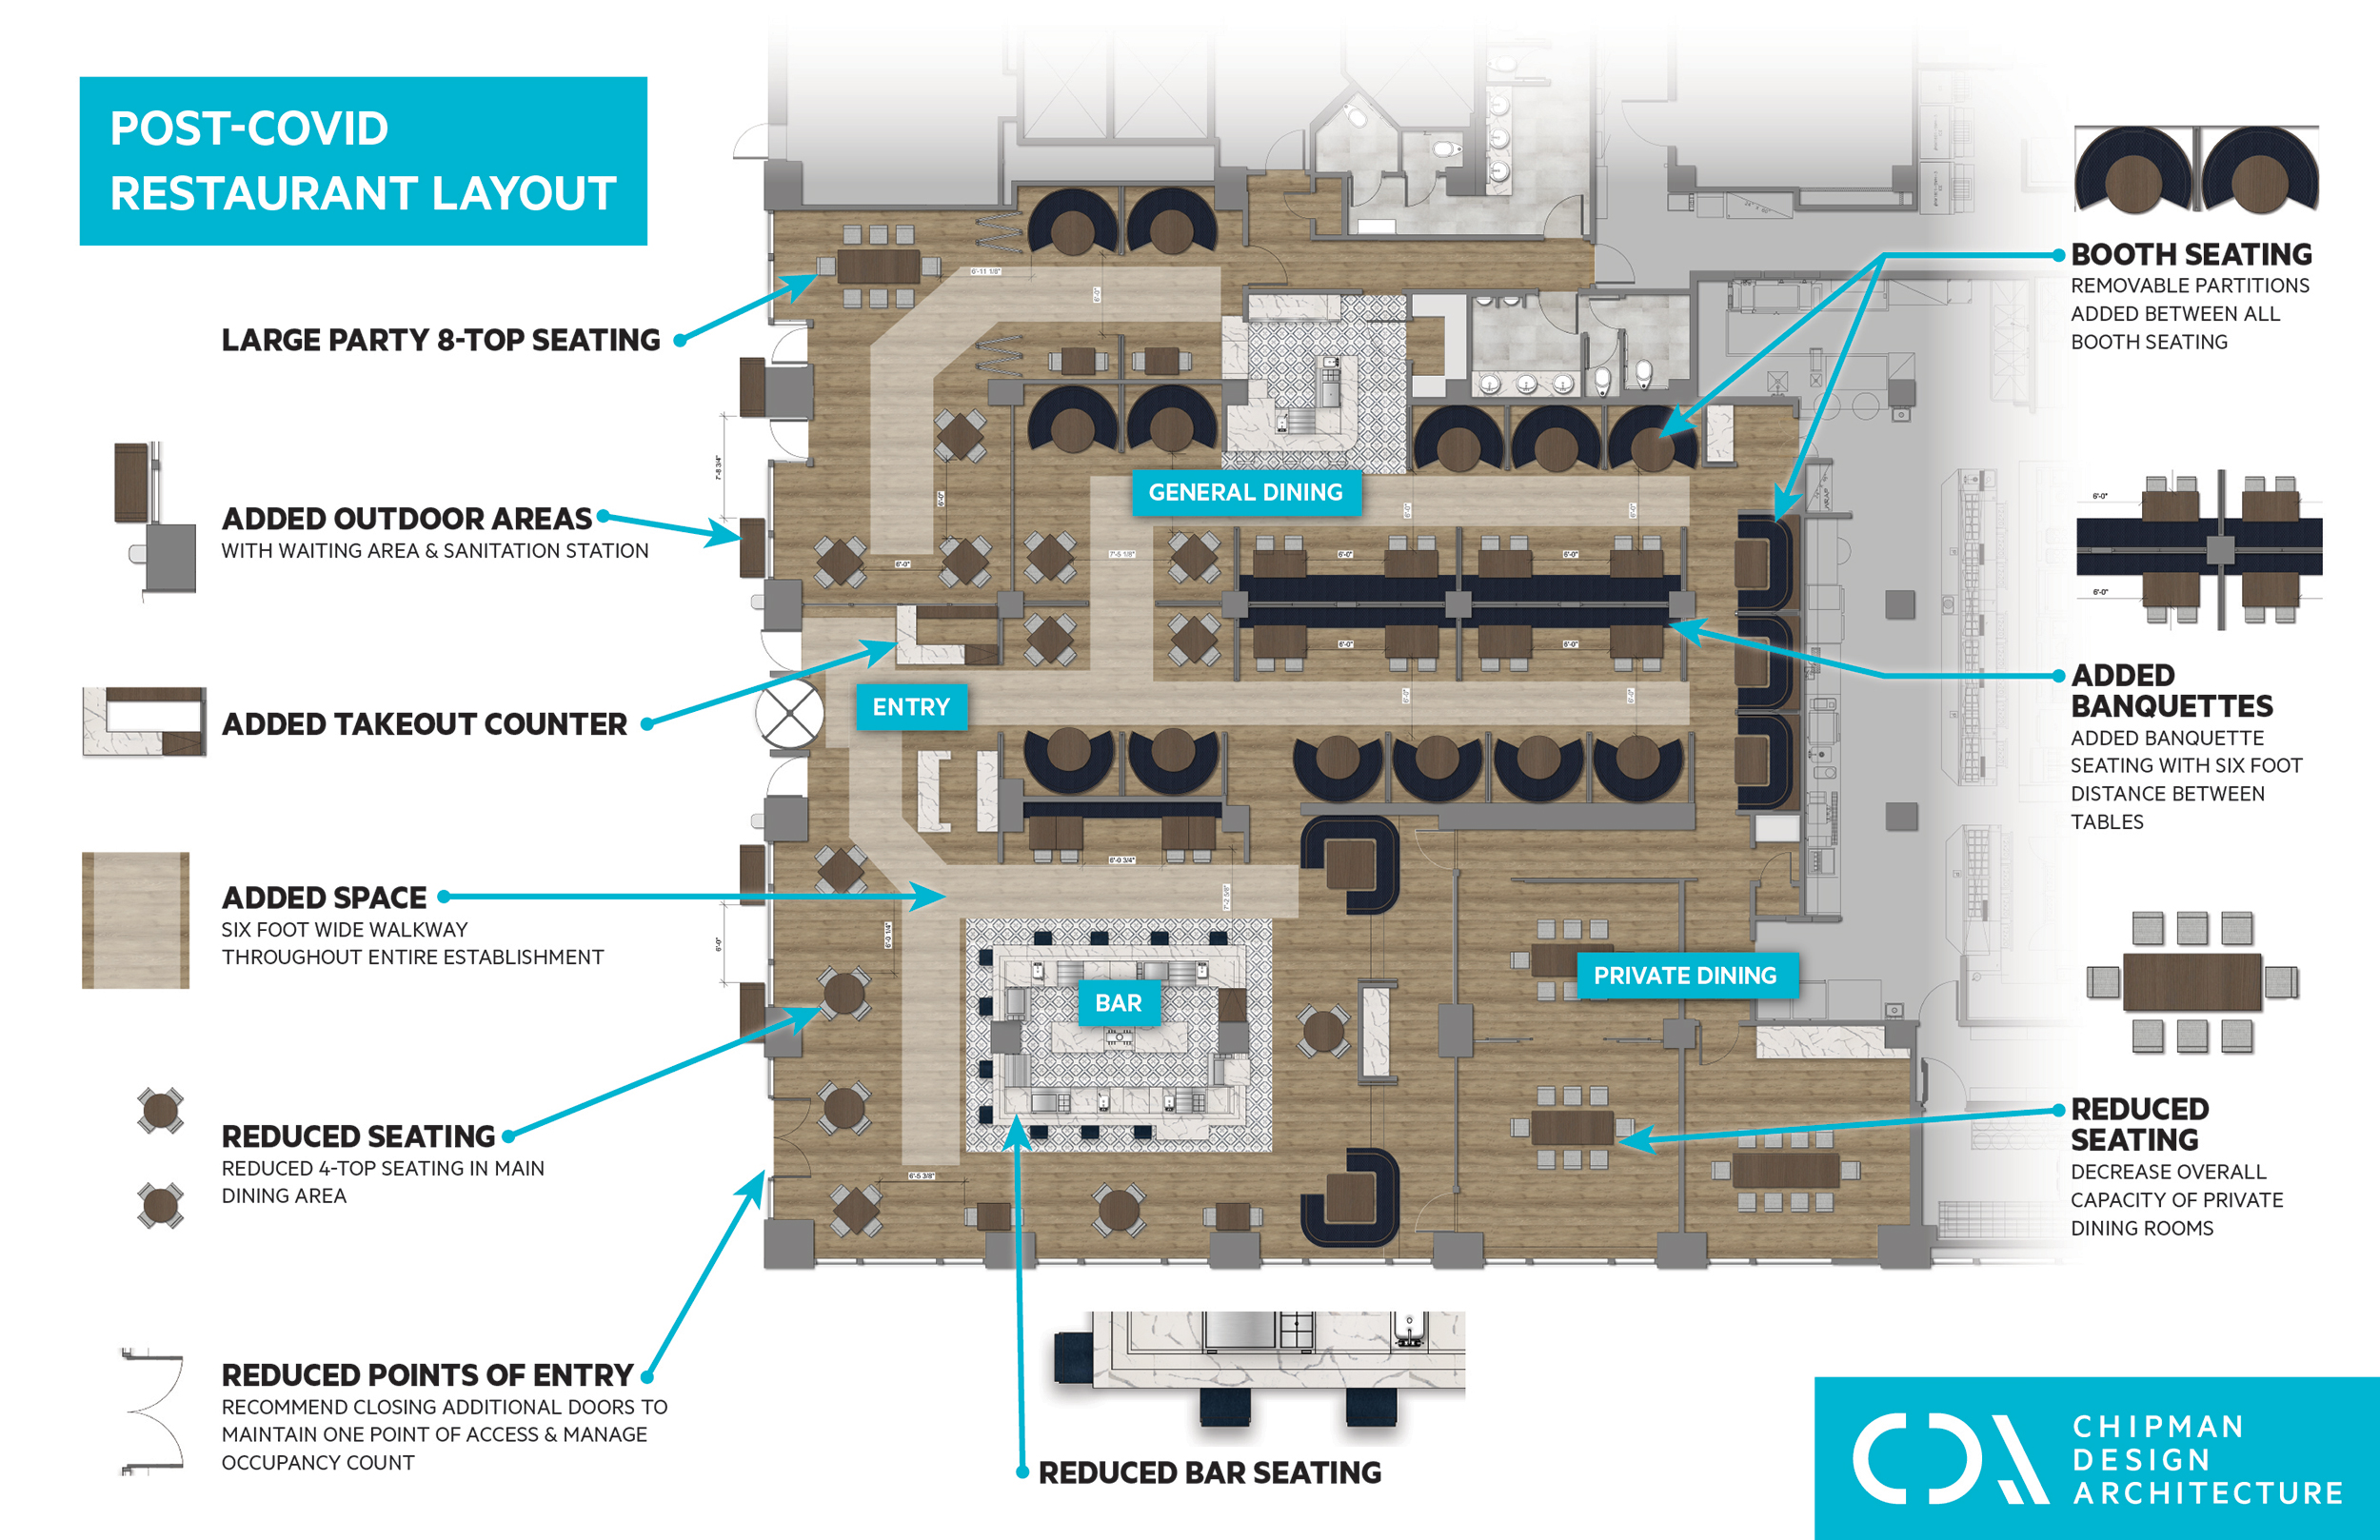 post-covid restaurant layout by chipman design architecture